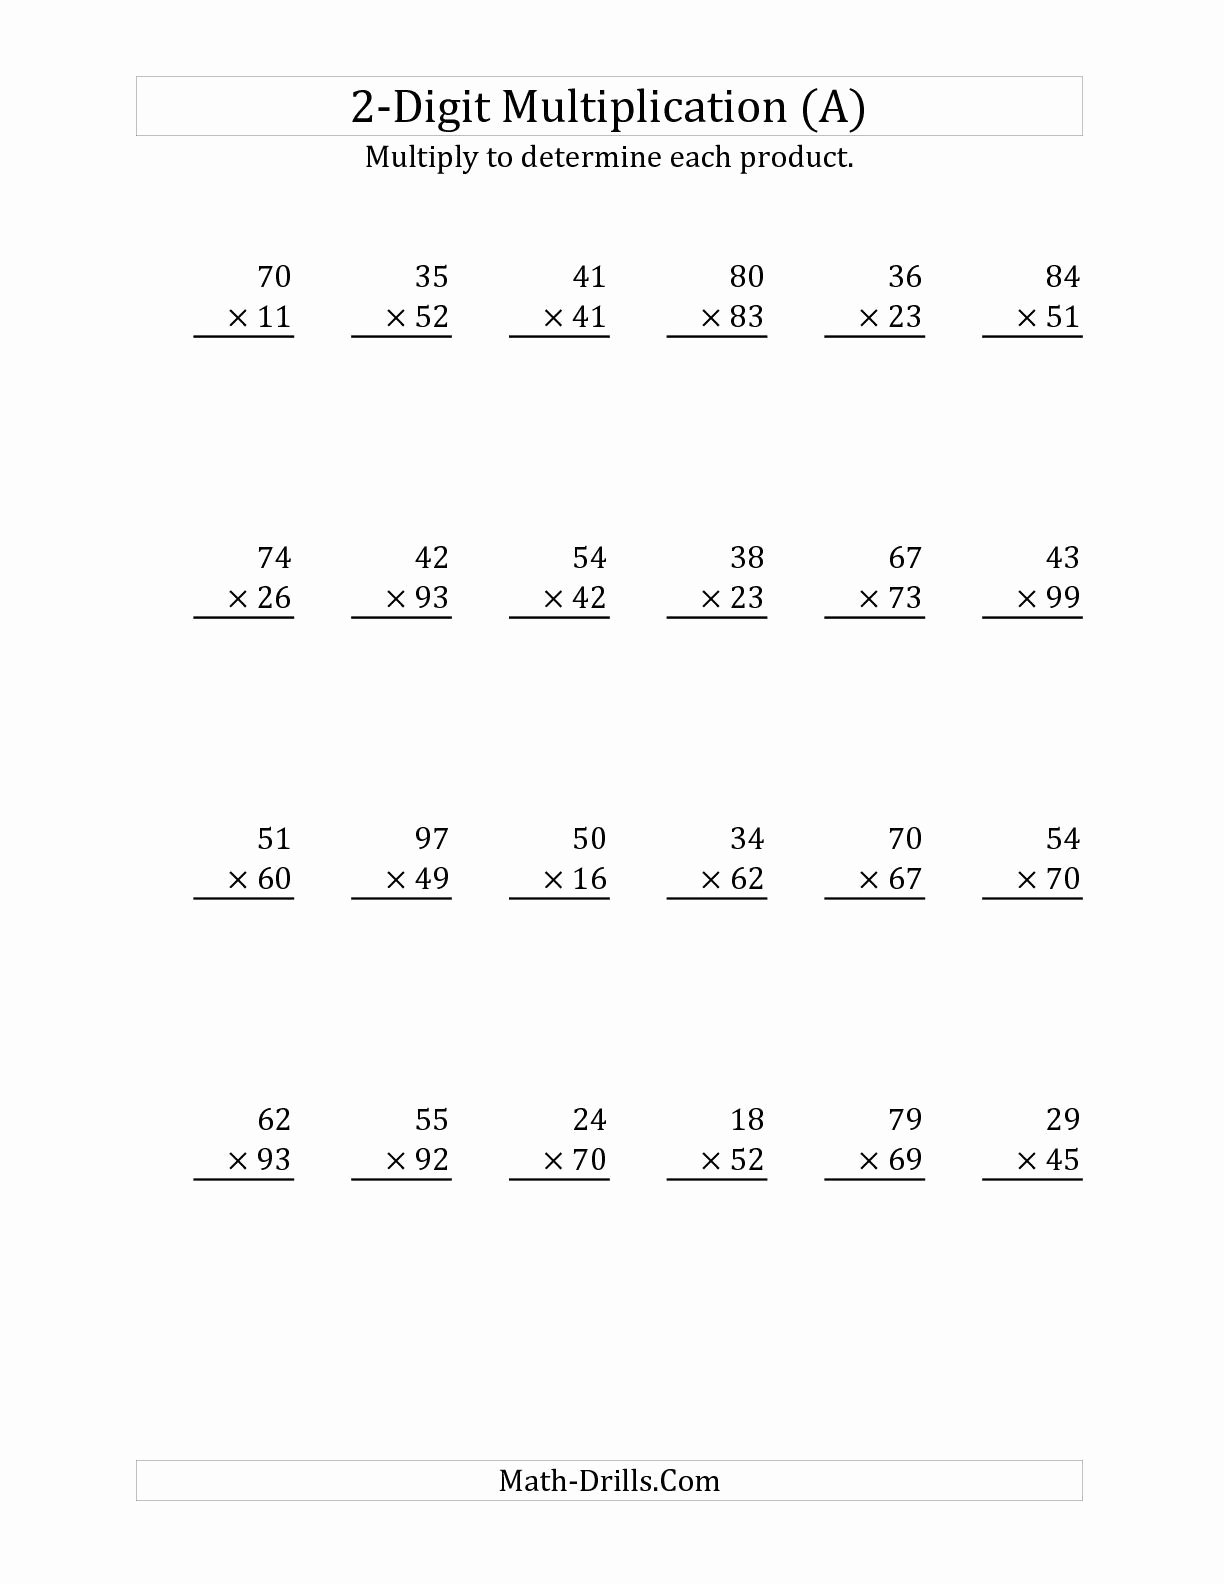 2 by 2 Multiplication Worksheets Awesome Multiplying A 2 Digit Number by A 2 Digit Number A Long